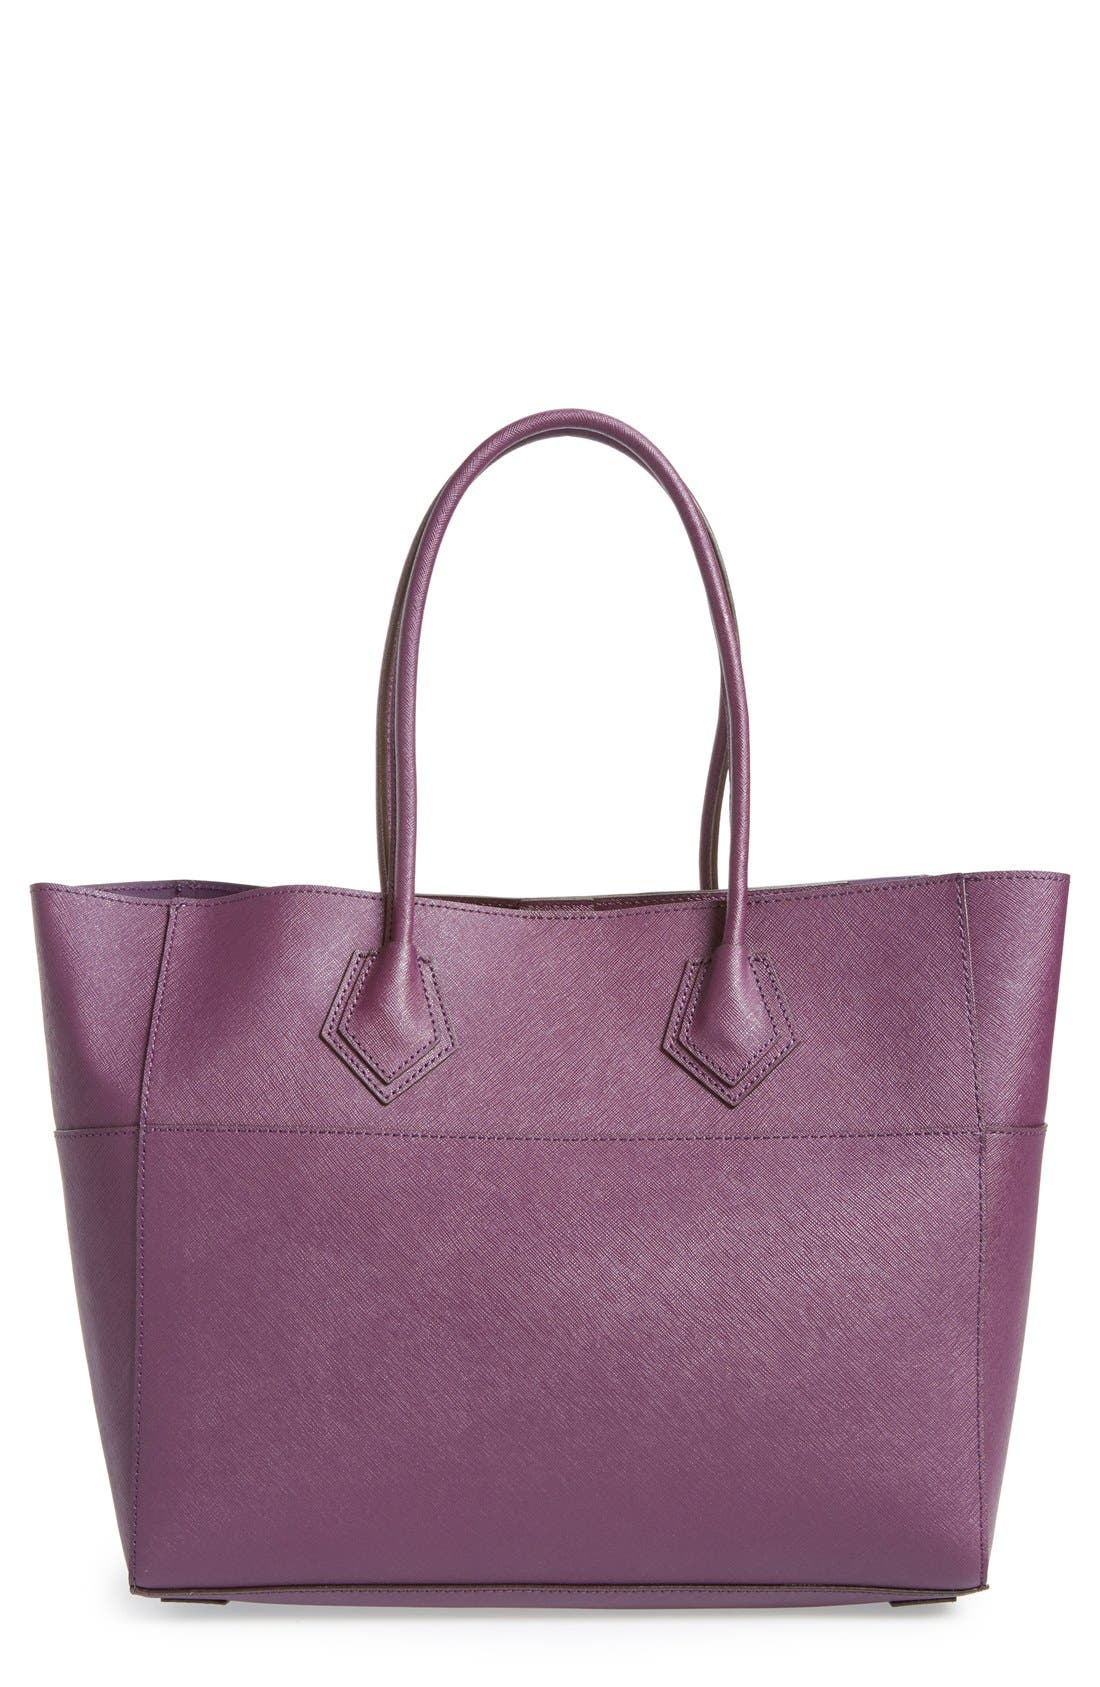 Alternate Image 1 Selected - Rebecca Minkoff 'Piper' Tote